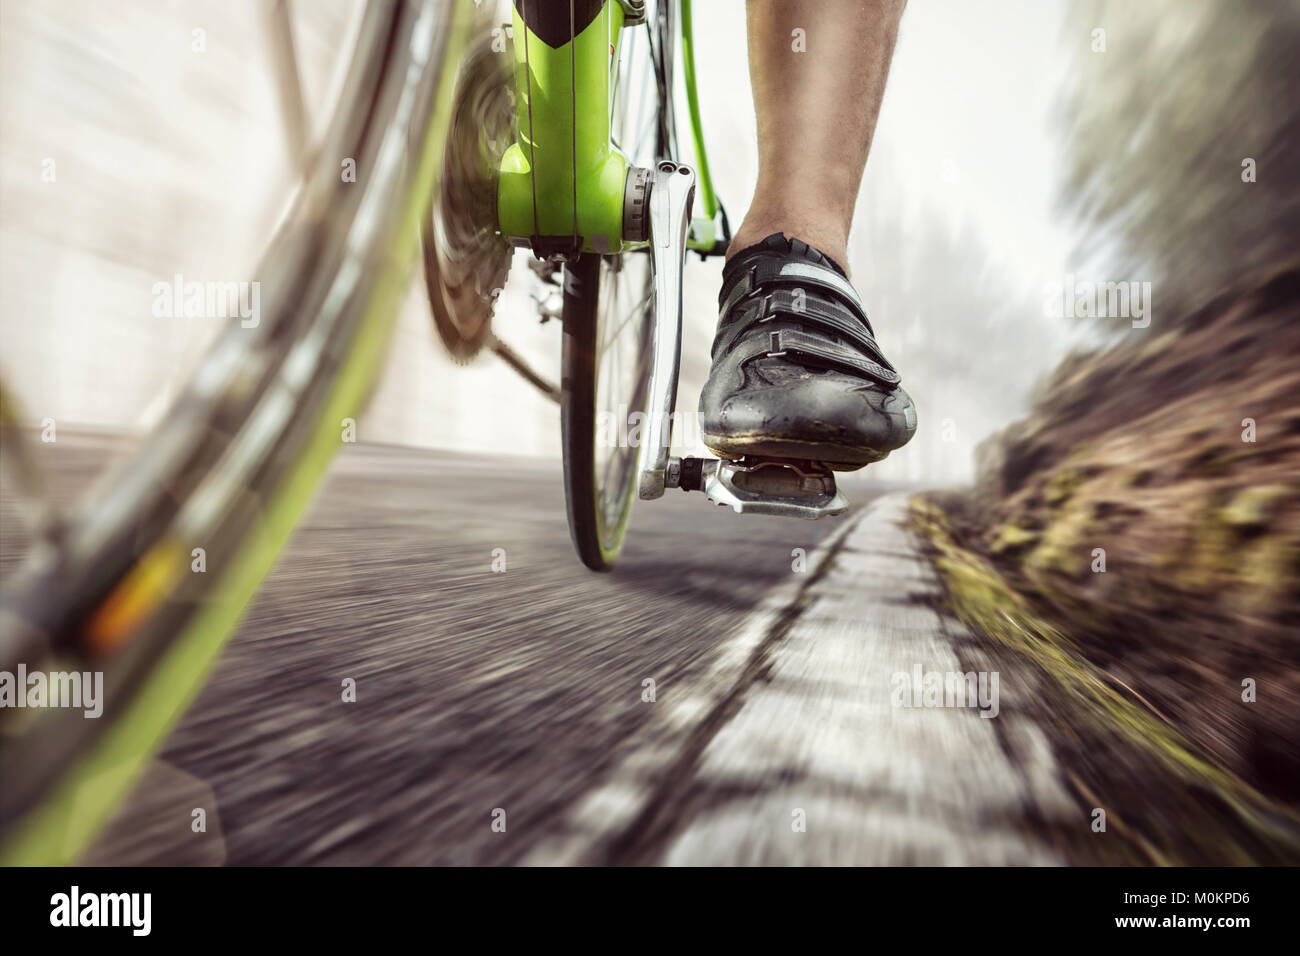 Pedal of a fast moving racing bicycle - Stock Image